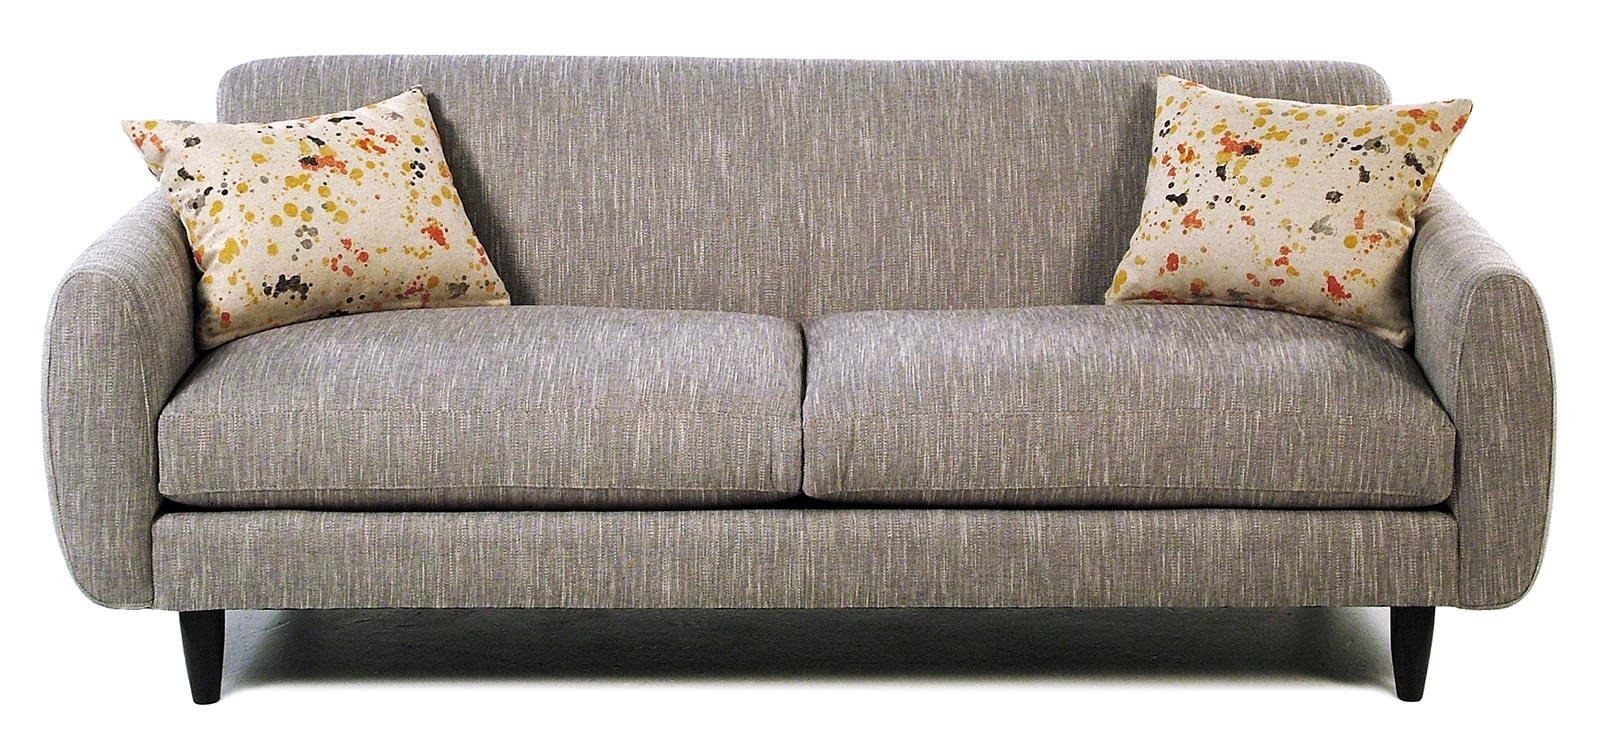 Jonathan Louis Splash Contemporary Sofa - Item Number: 26030-HanniganFog